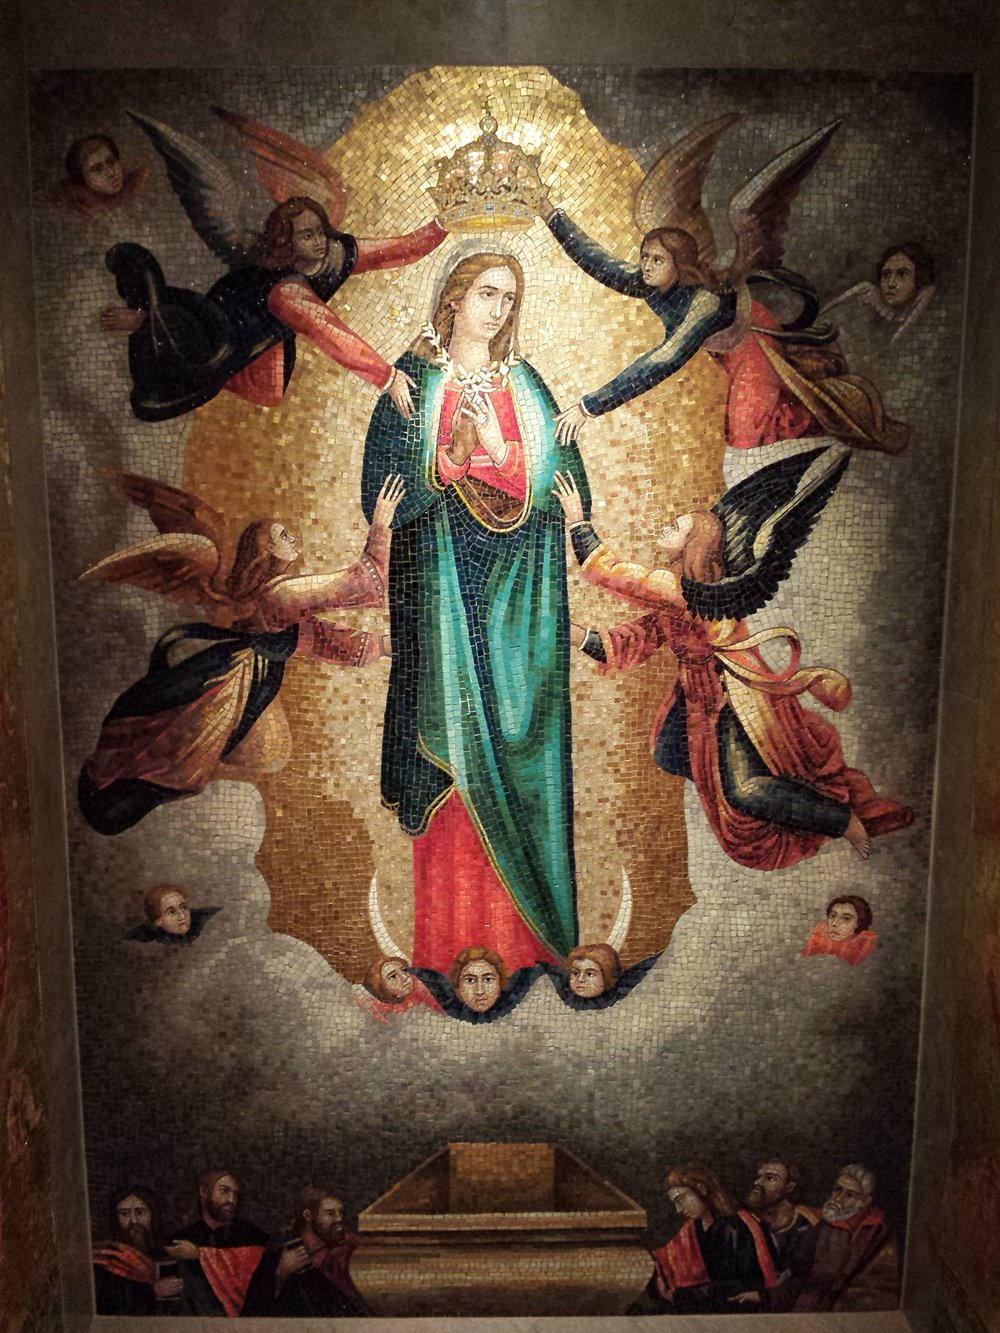 The Blessed Mother crowned as Queen of Heaven and earth, as seen in a mosaic at the National Basilica of the Shrine of the Immaculate Conception.